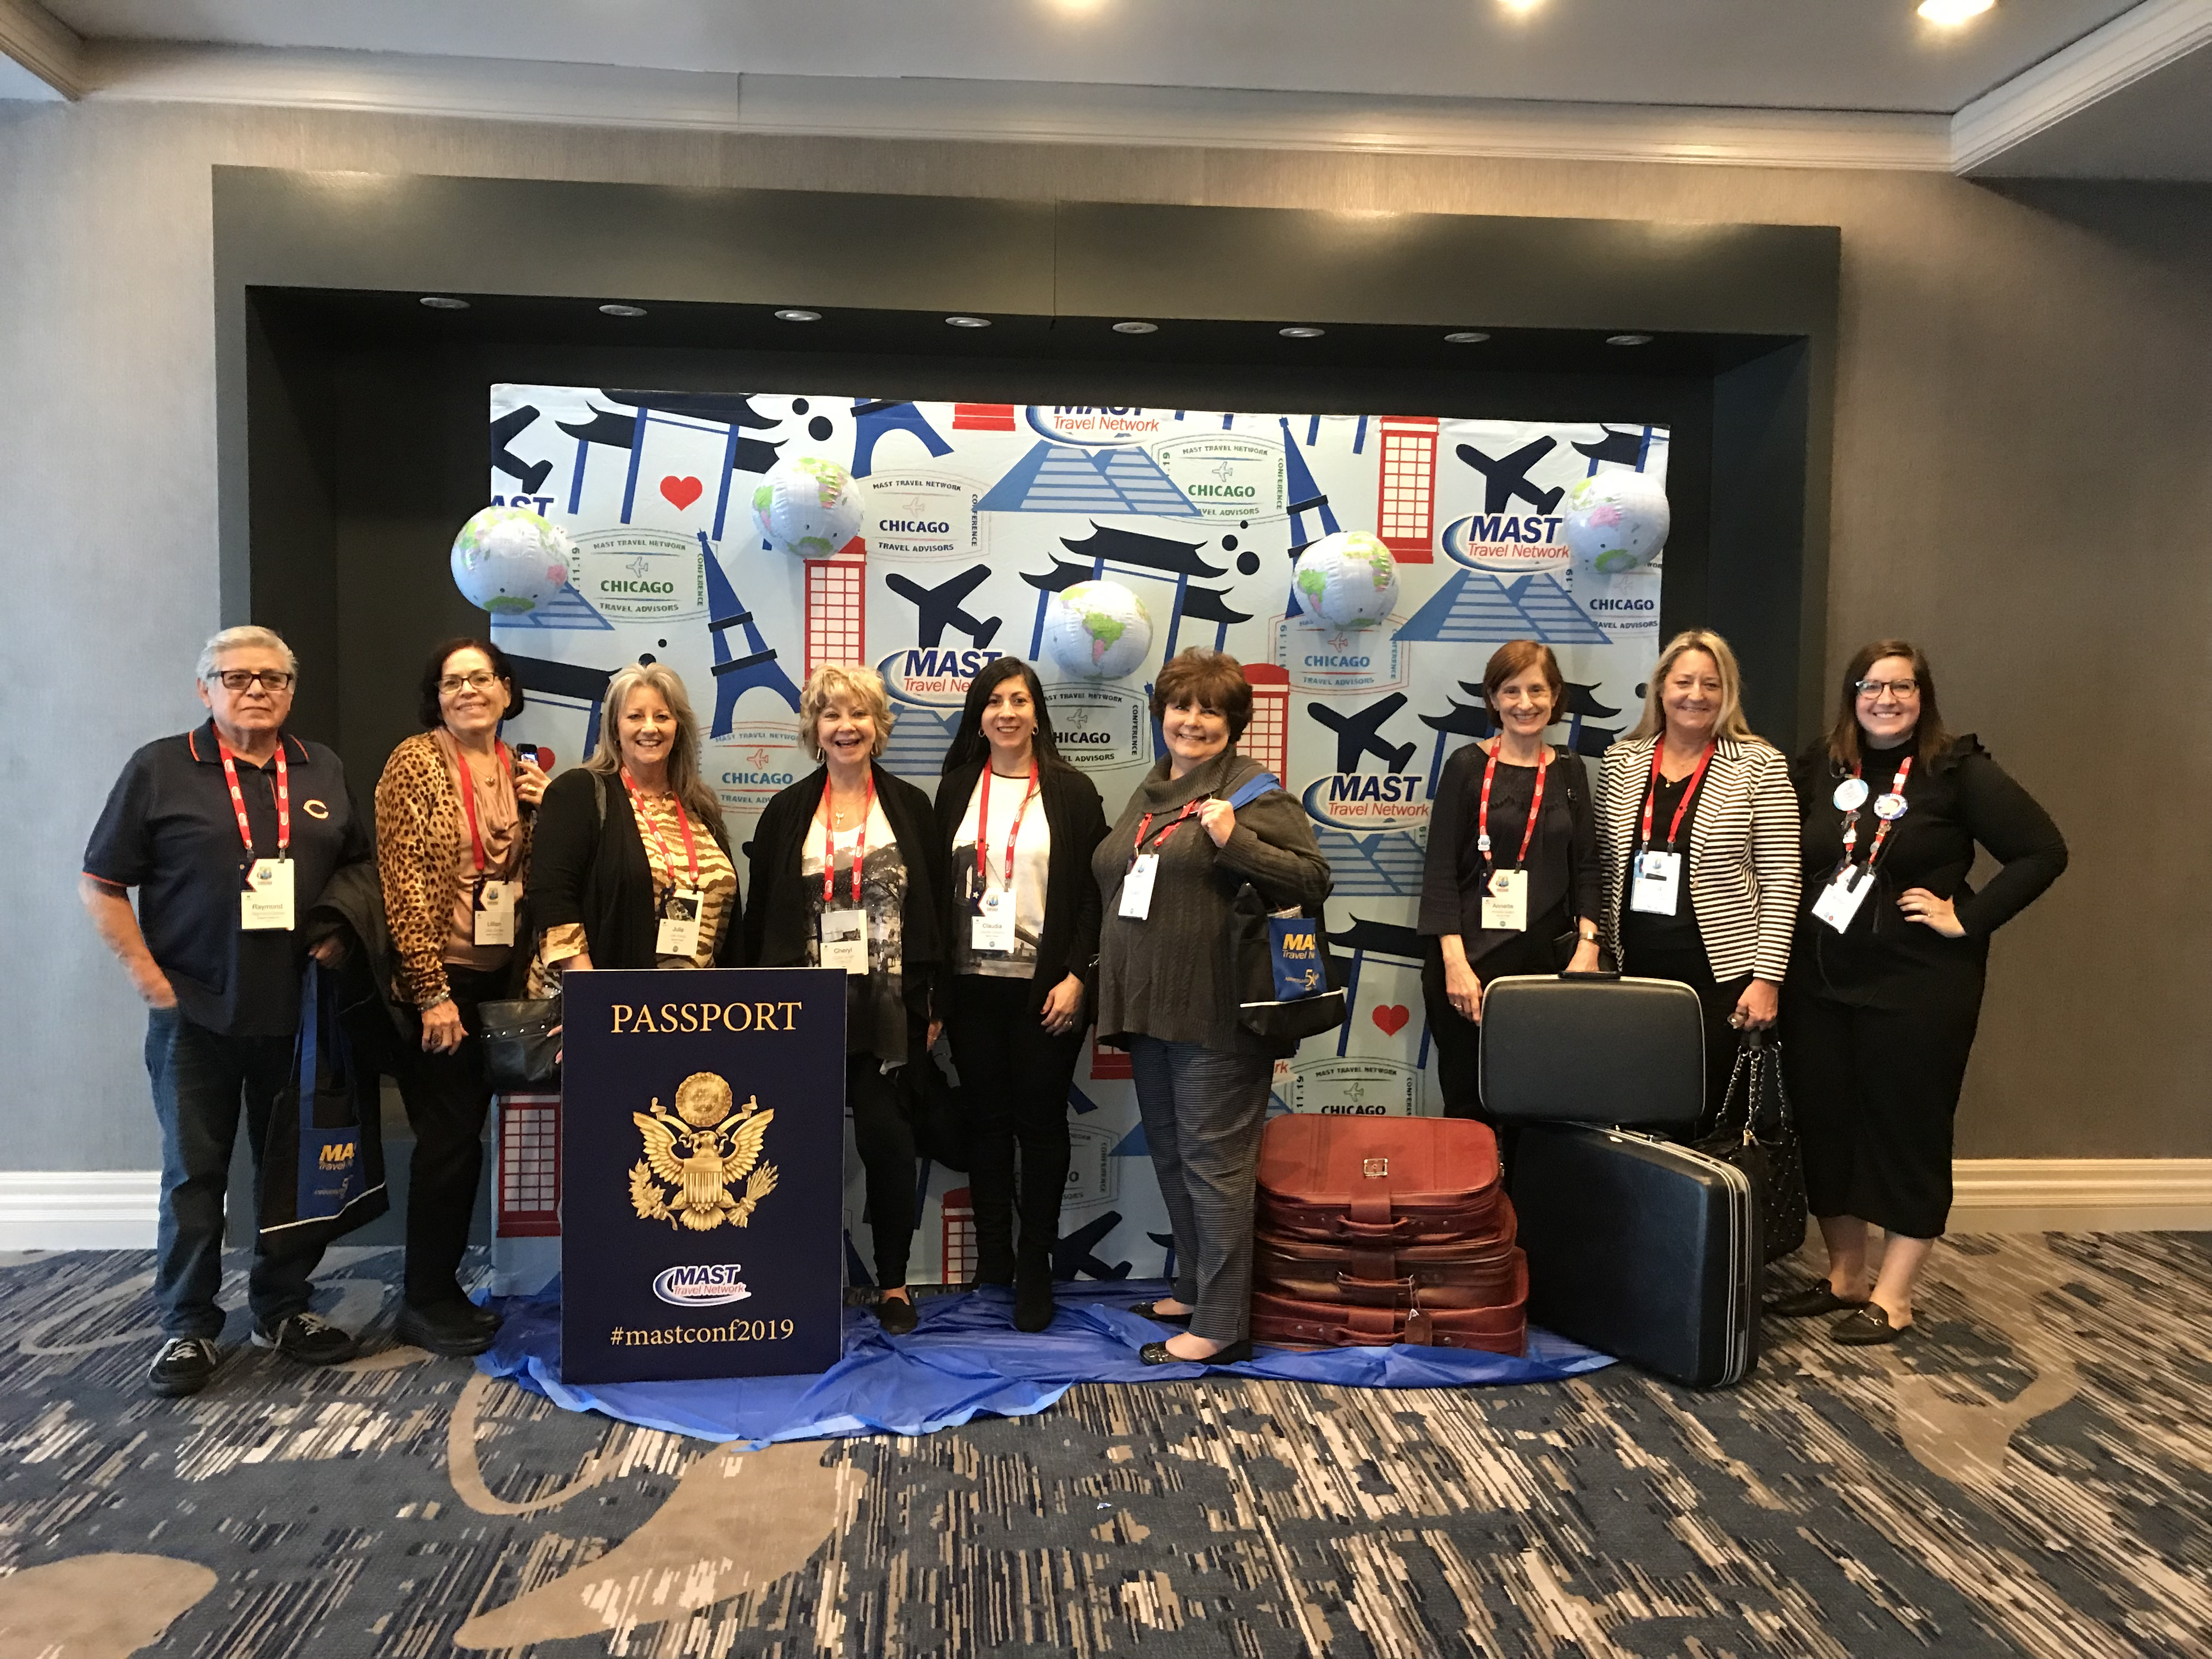 Travel agents gathered at MAST's 50th the Anniversary conference in Chicago this week